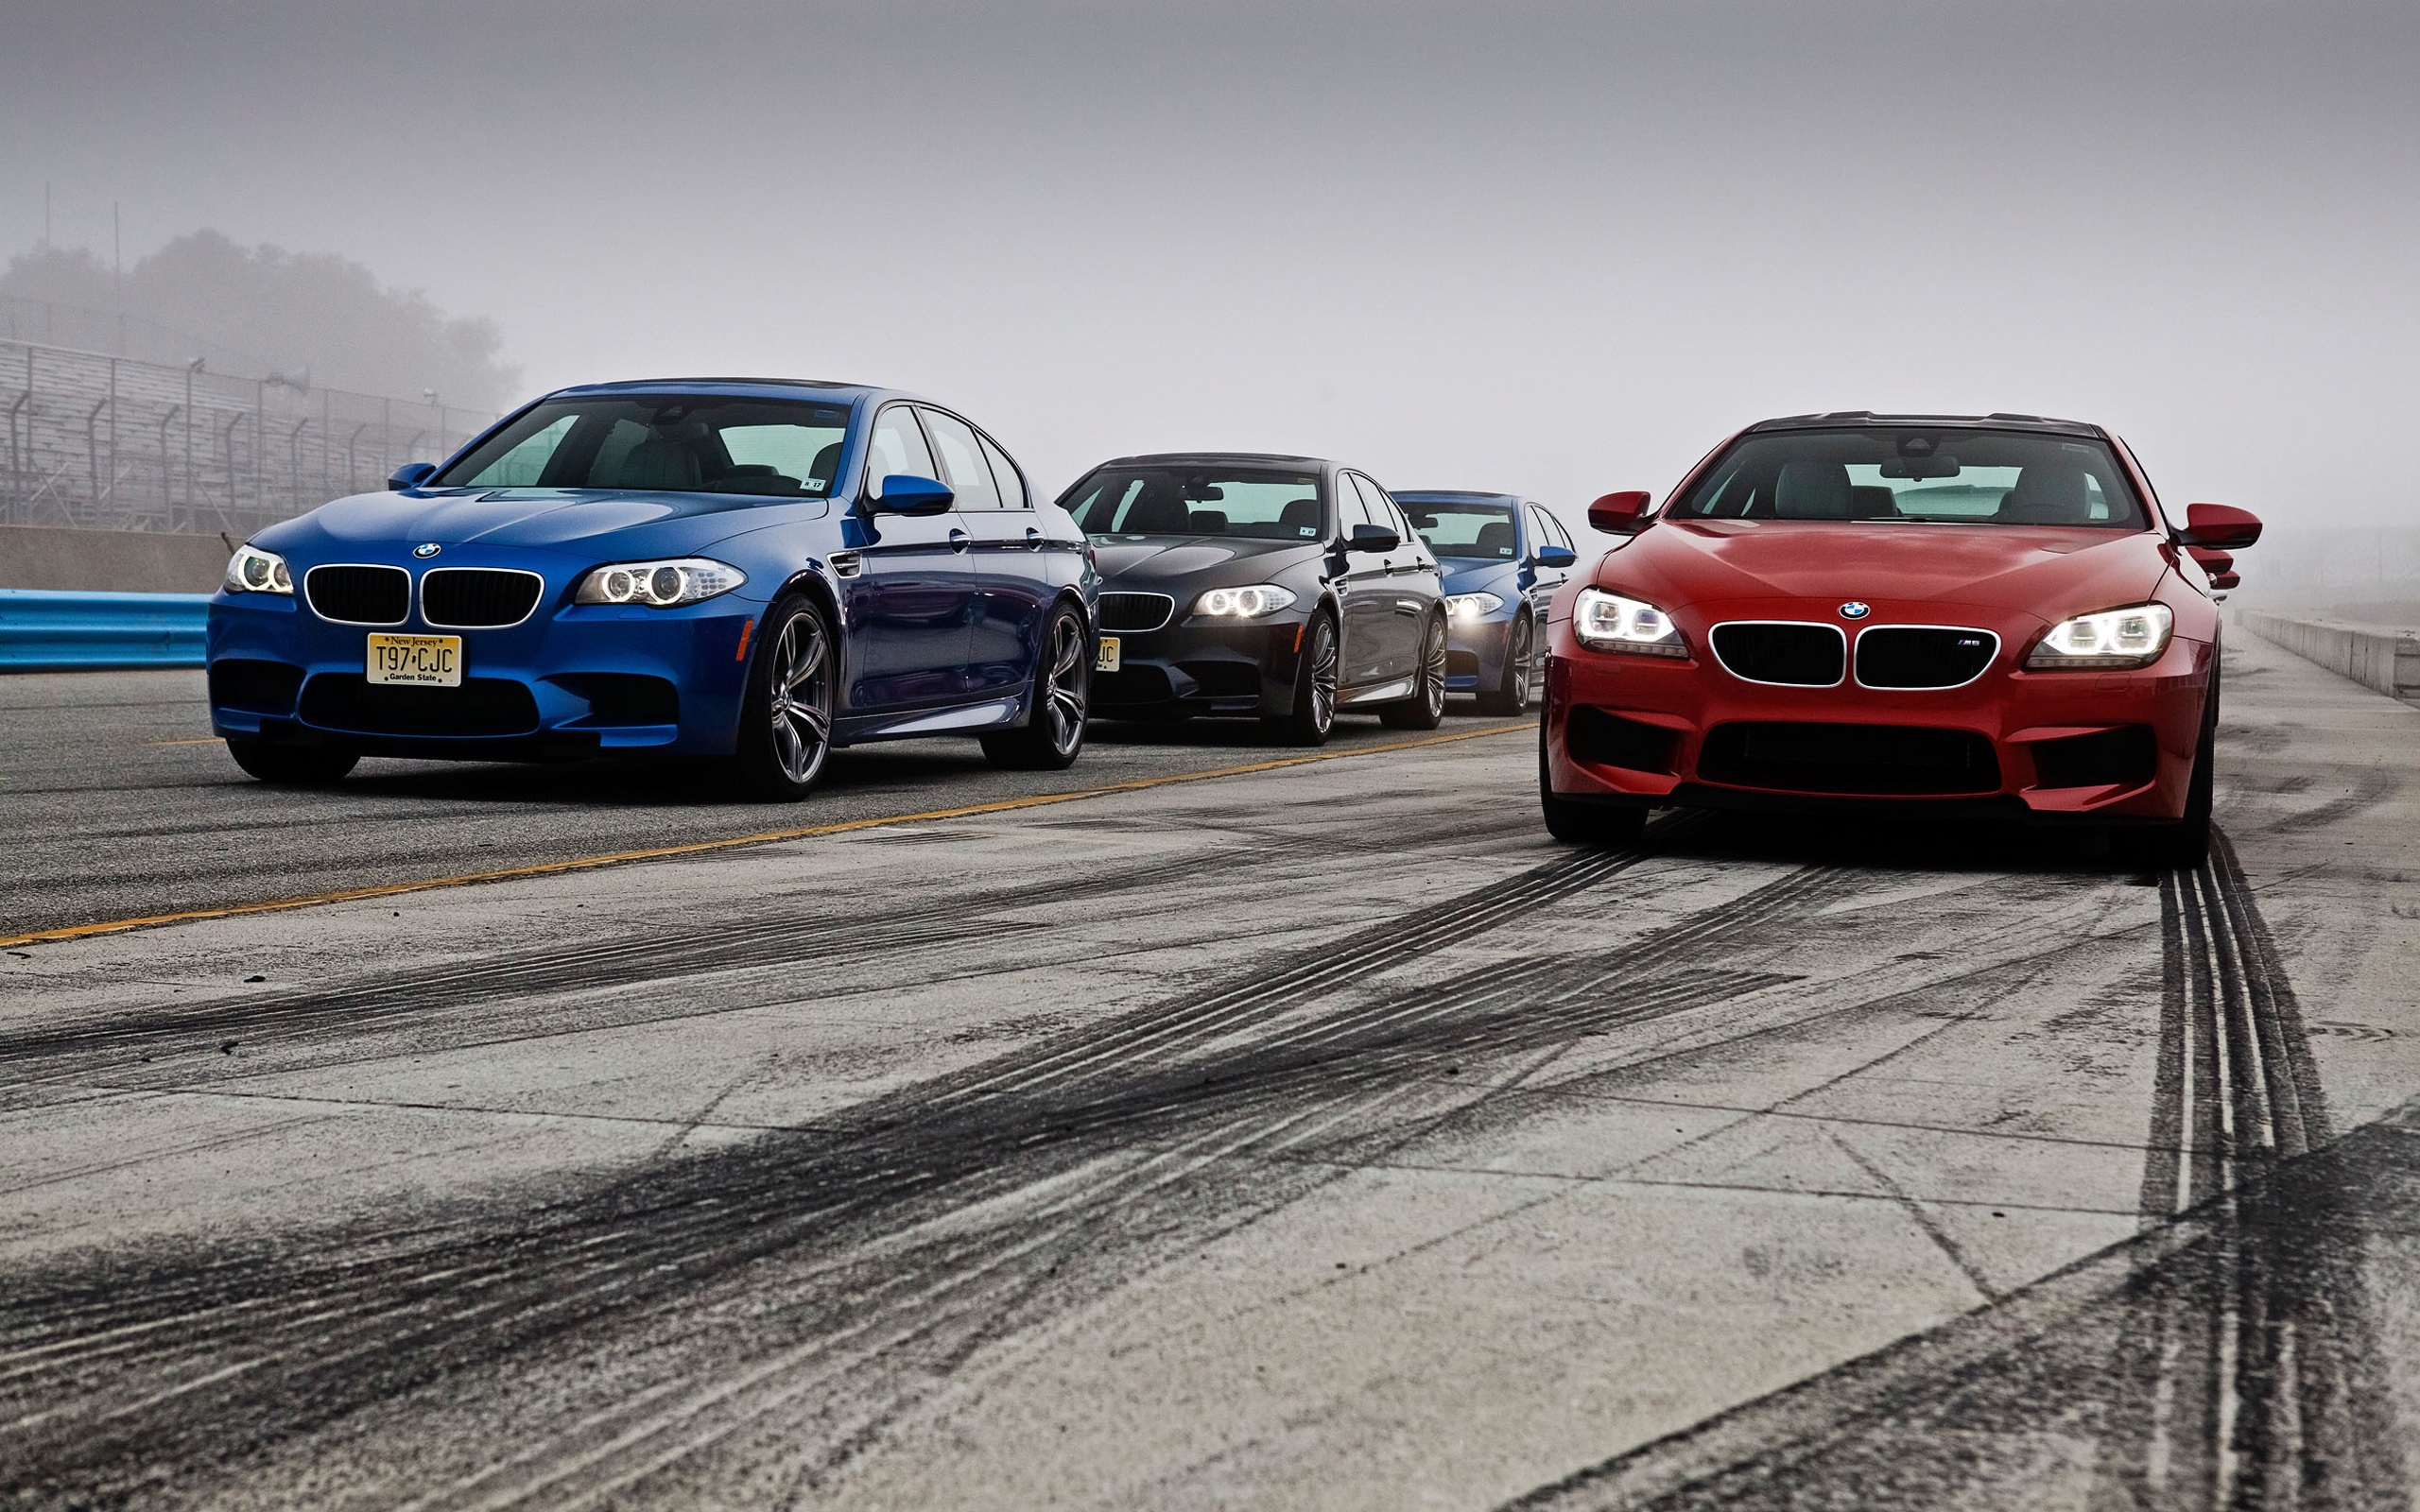 Wallpaper Bmw M5 M6 Red Blue Black Cars 2560x1600 Hd Picture